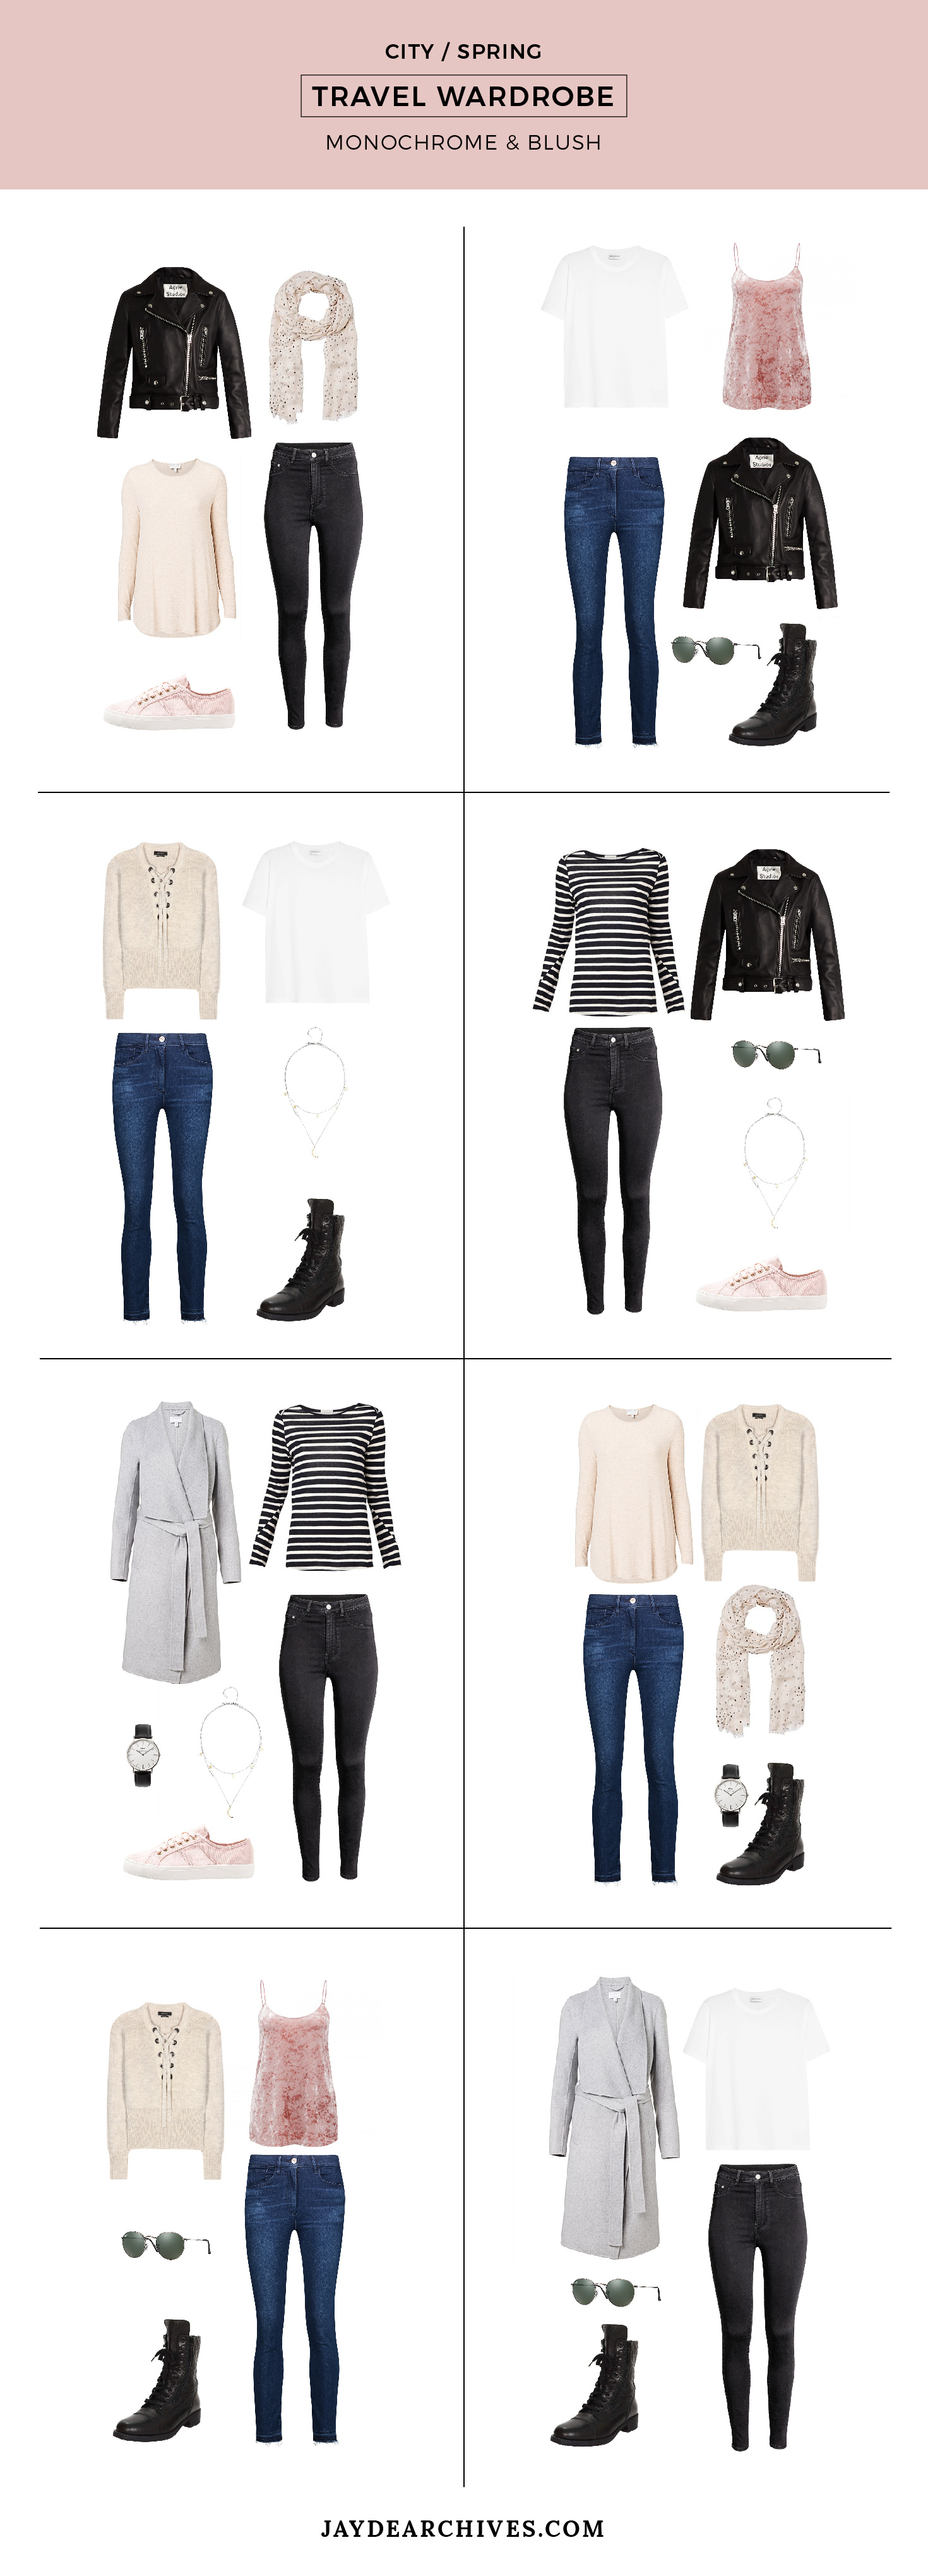 Travel Wardrobe: Monochrome and Blush. Perfect for the city in spring or autumn.